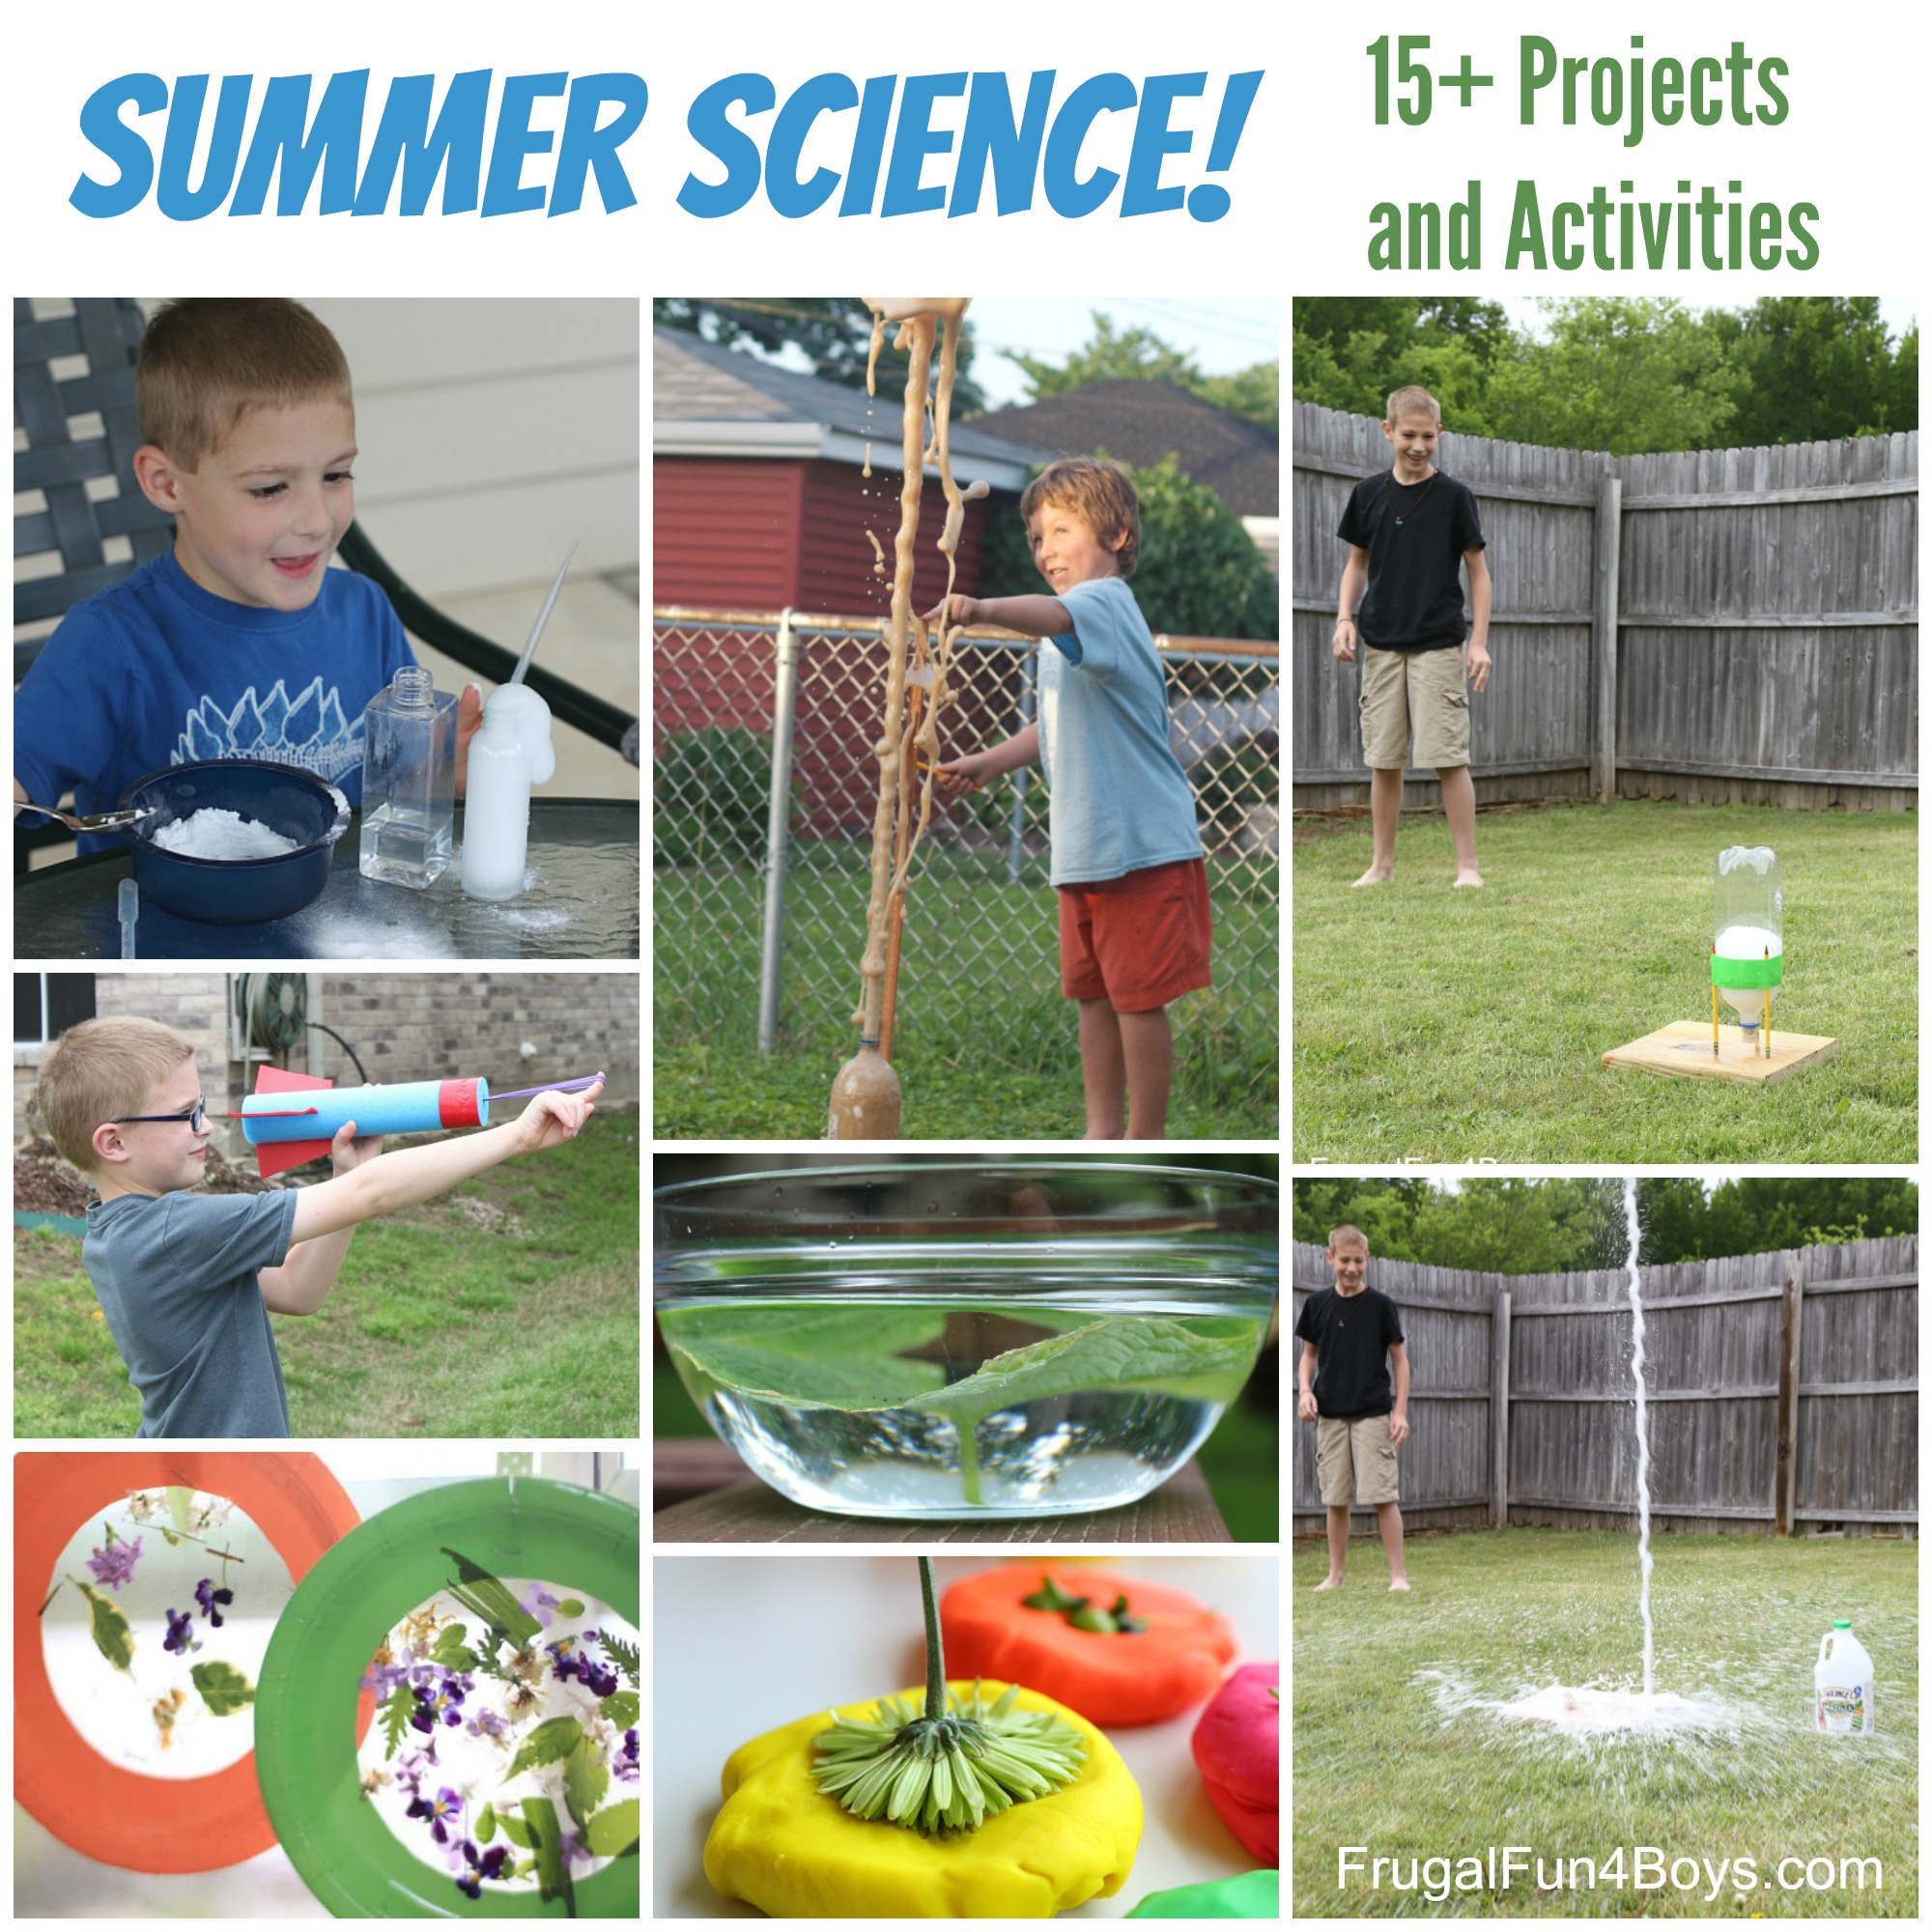 Summer Science! 15+ Experiments and Projects for Kids